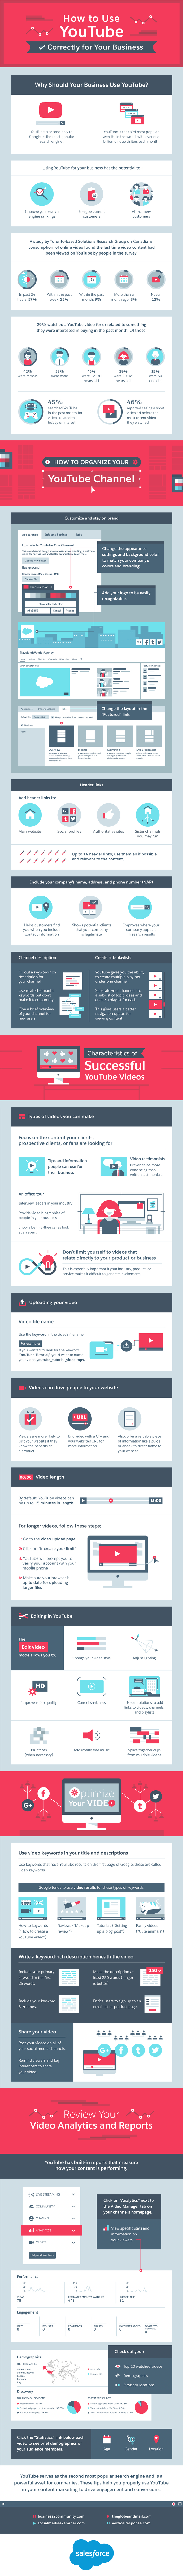 How to Use YouTube Correctly for Your Business